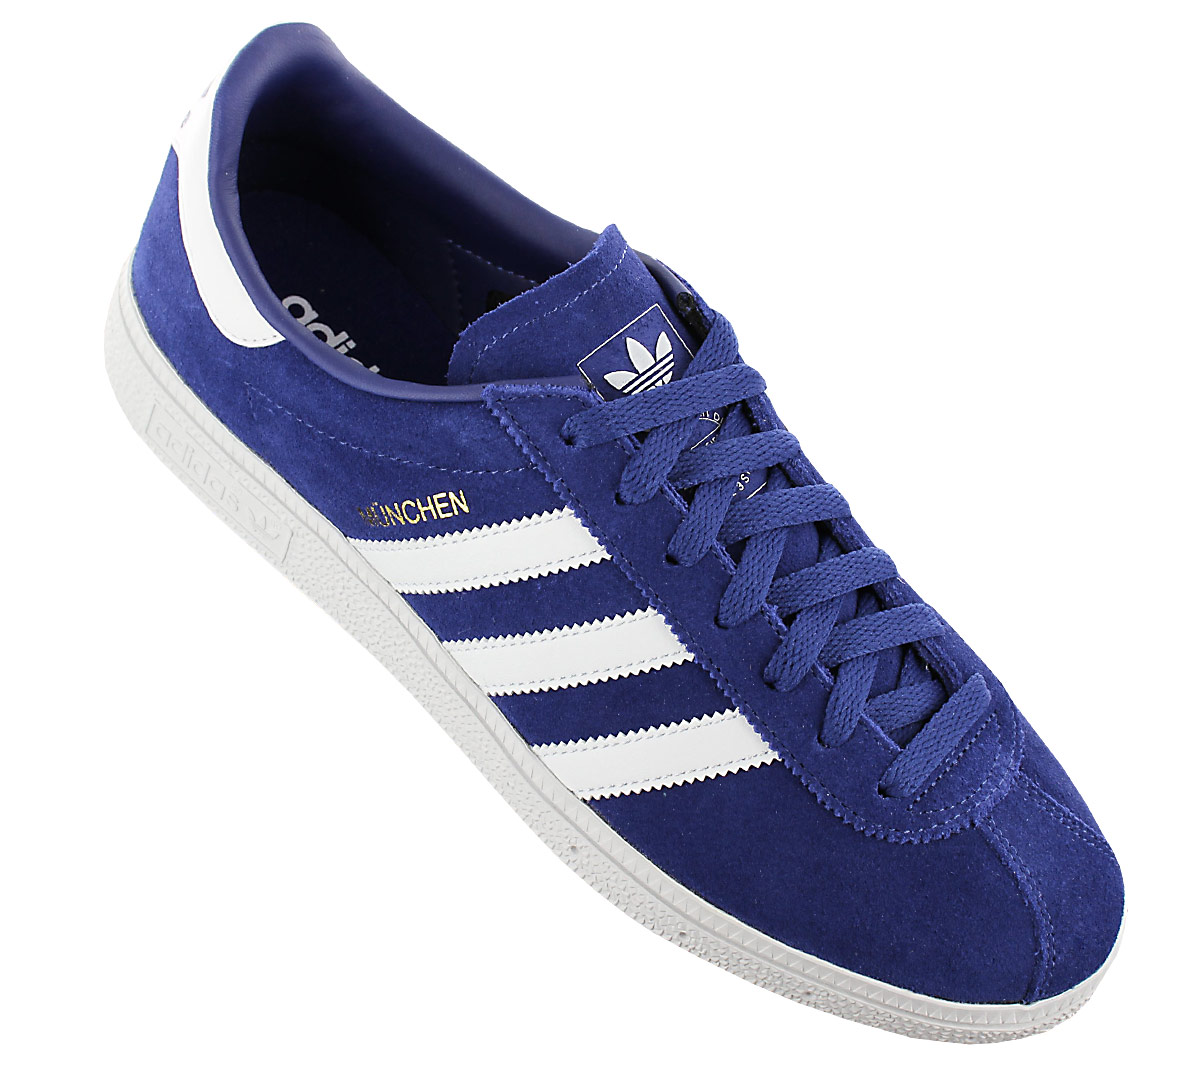 adidas Originals München BY9787 Chaussures Homme Sneaker Baskets Bleu